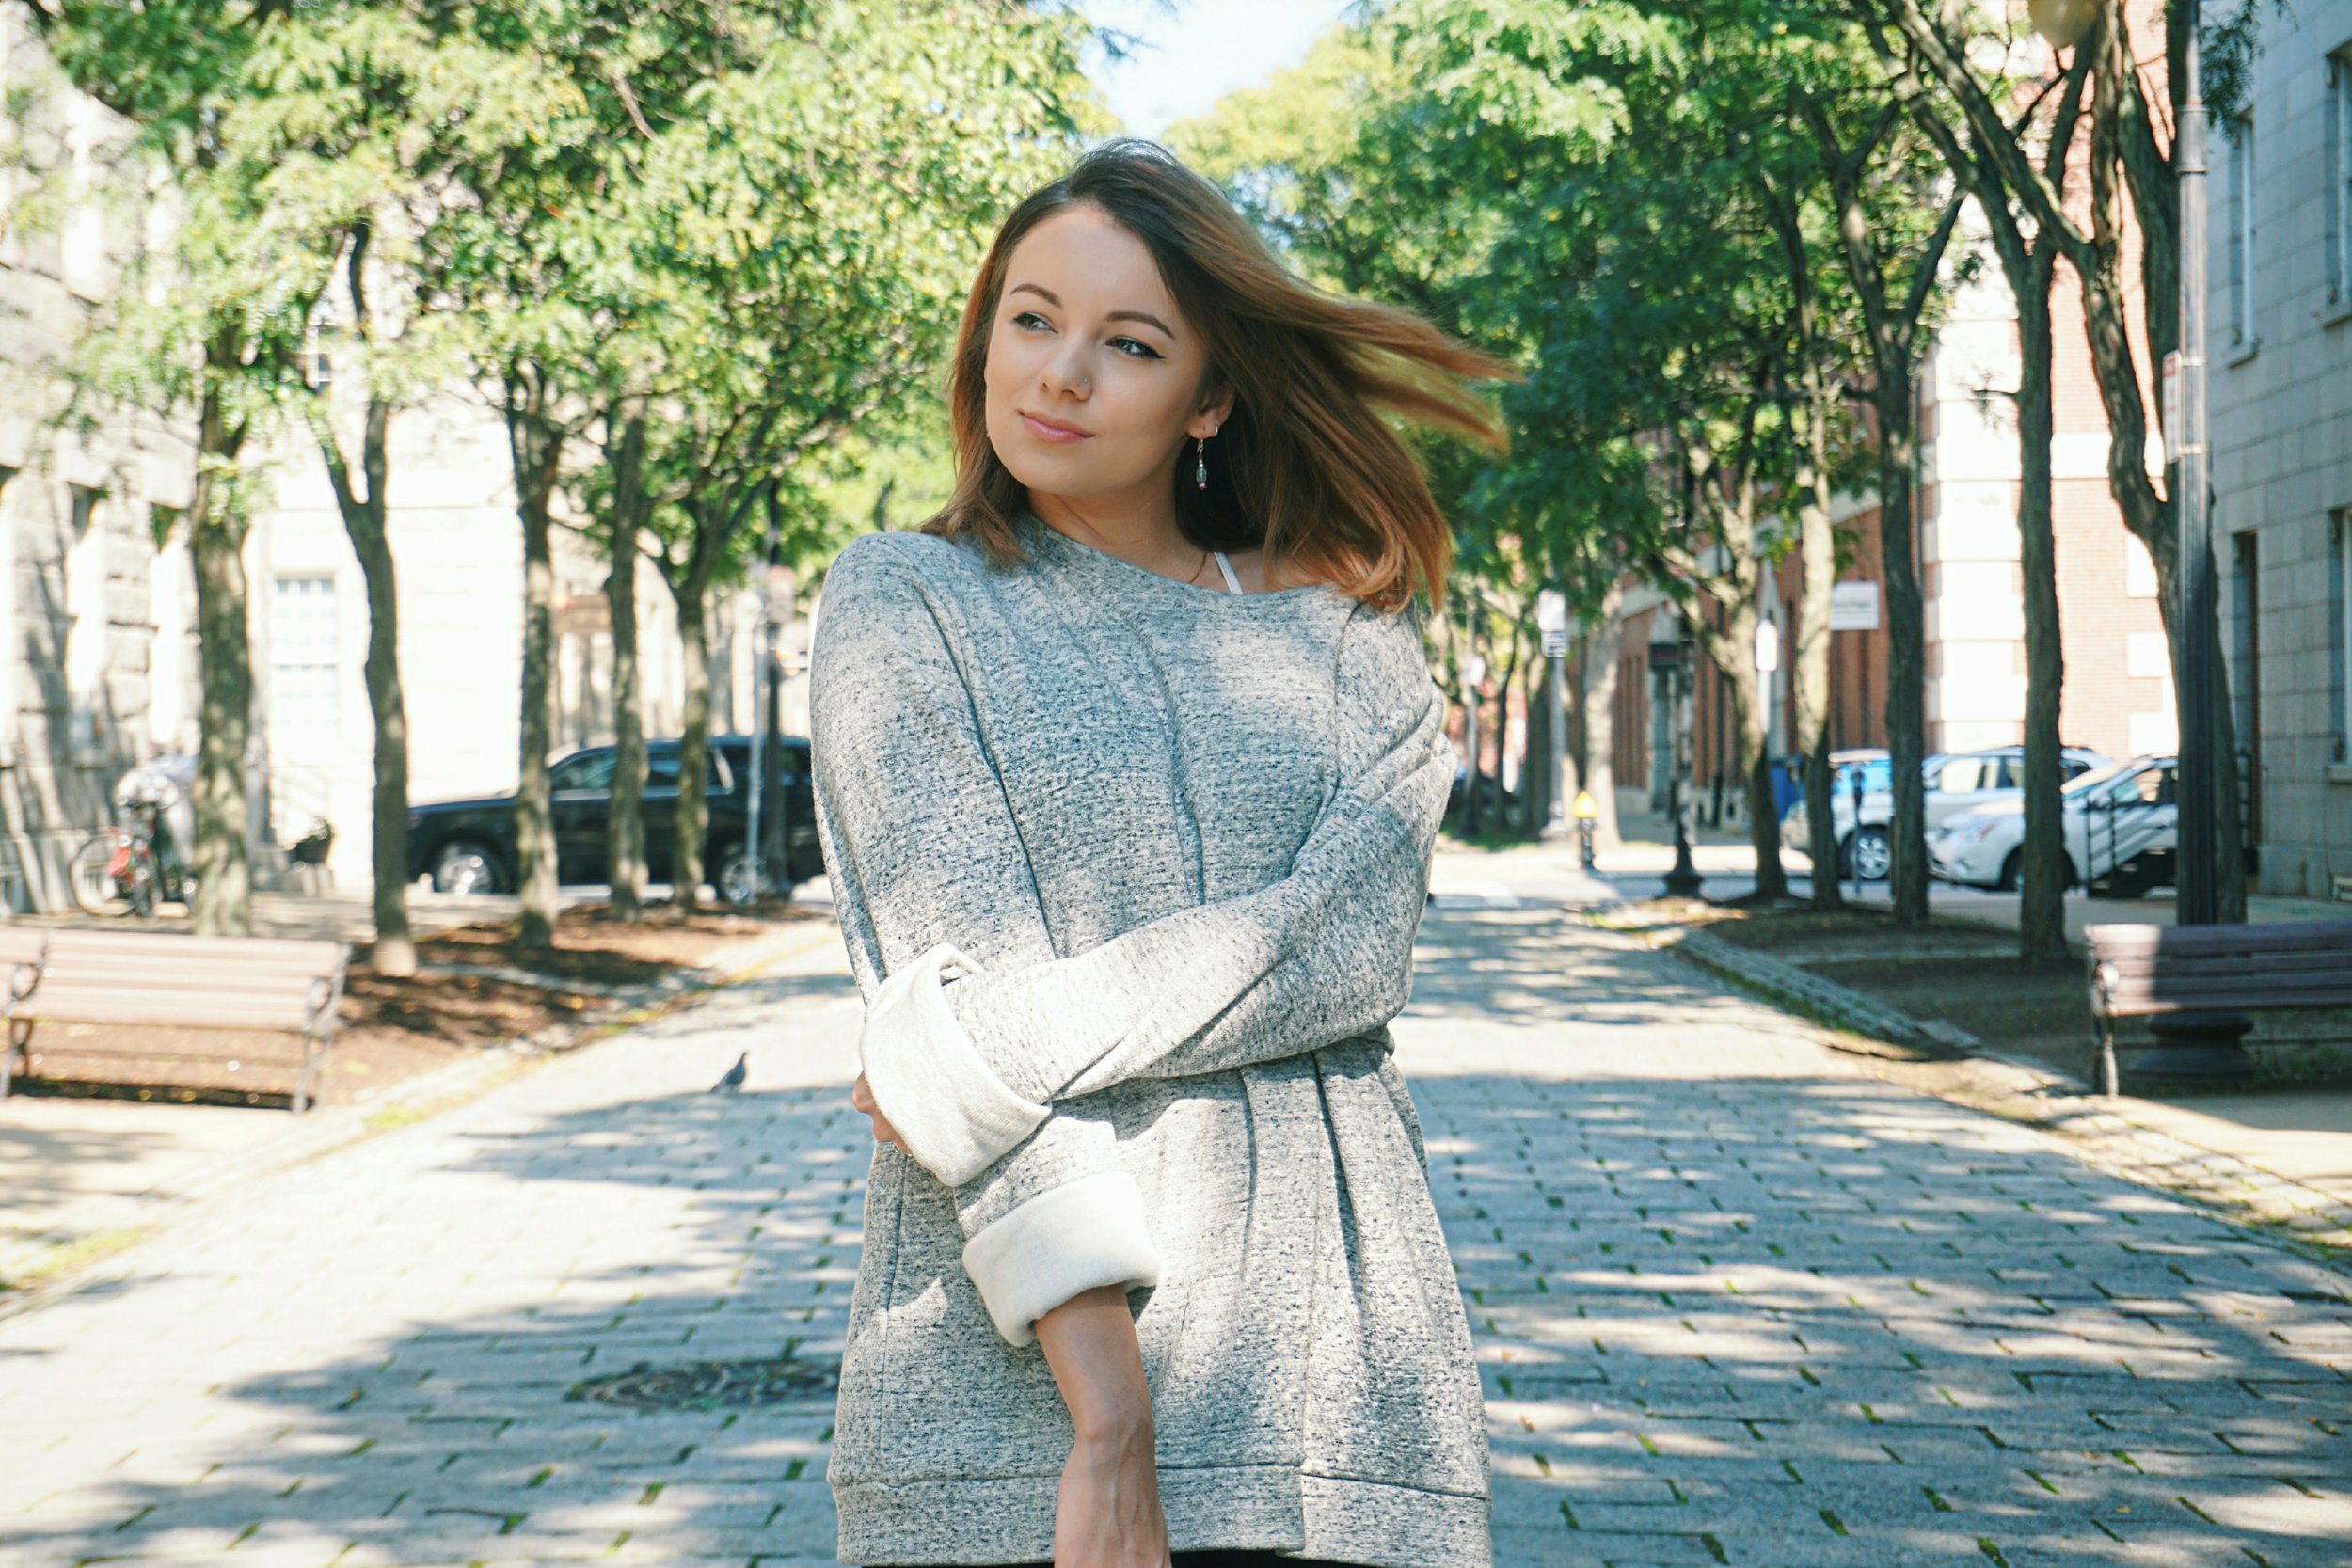 A girl wearing a gray oversized sweater.